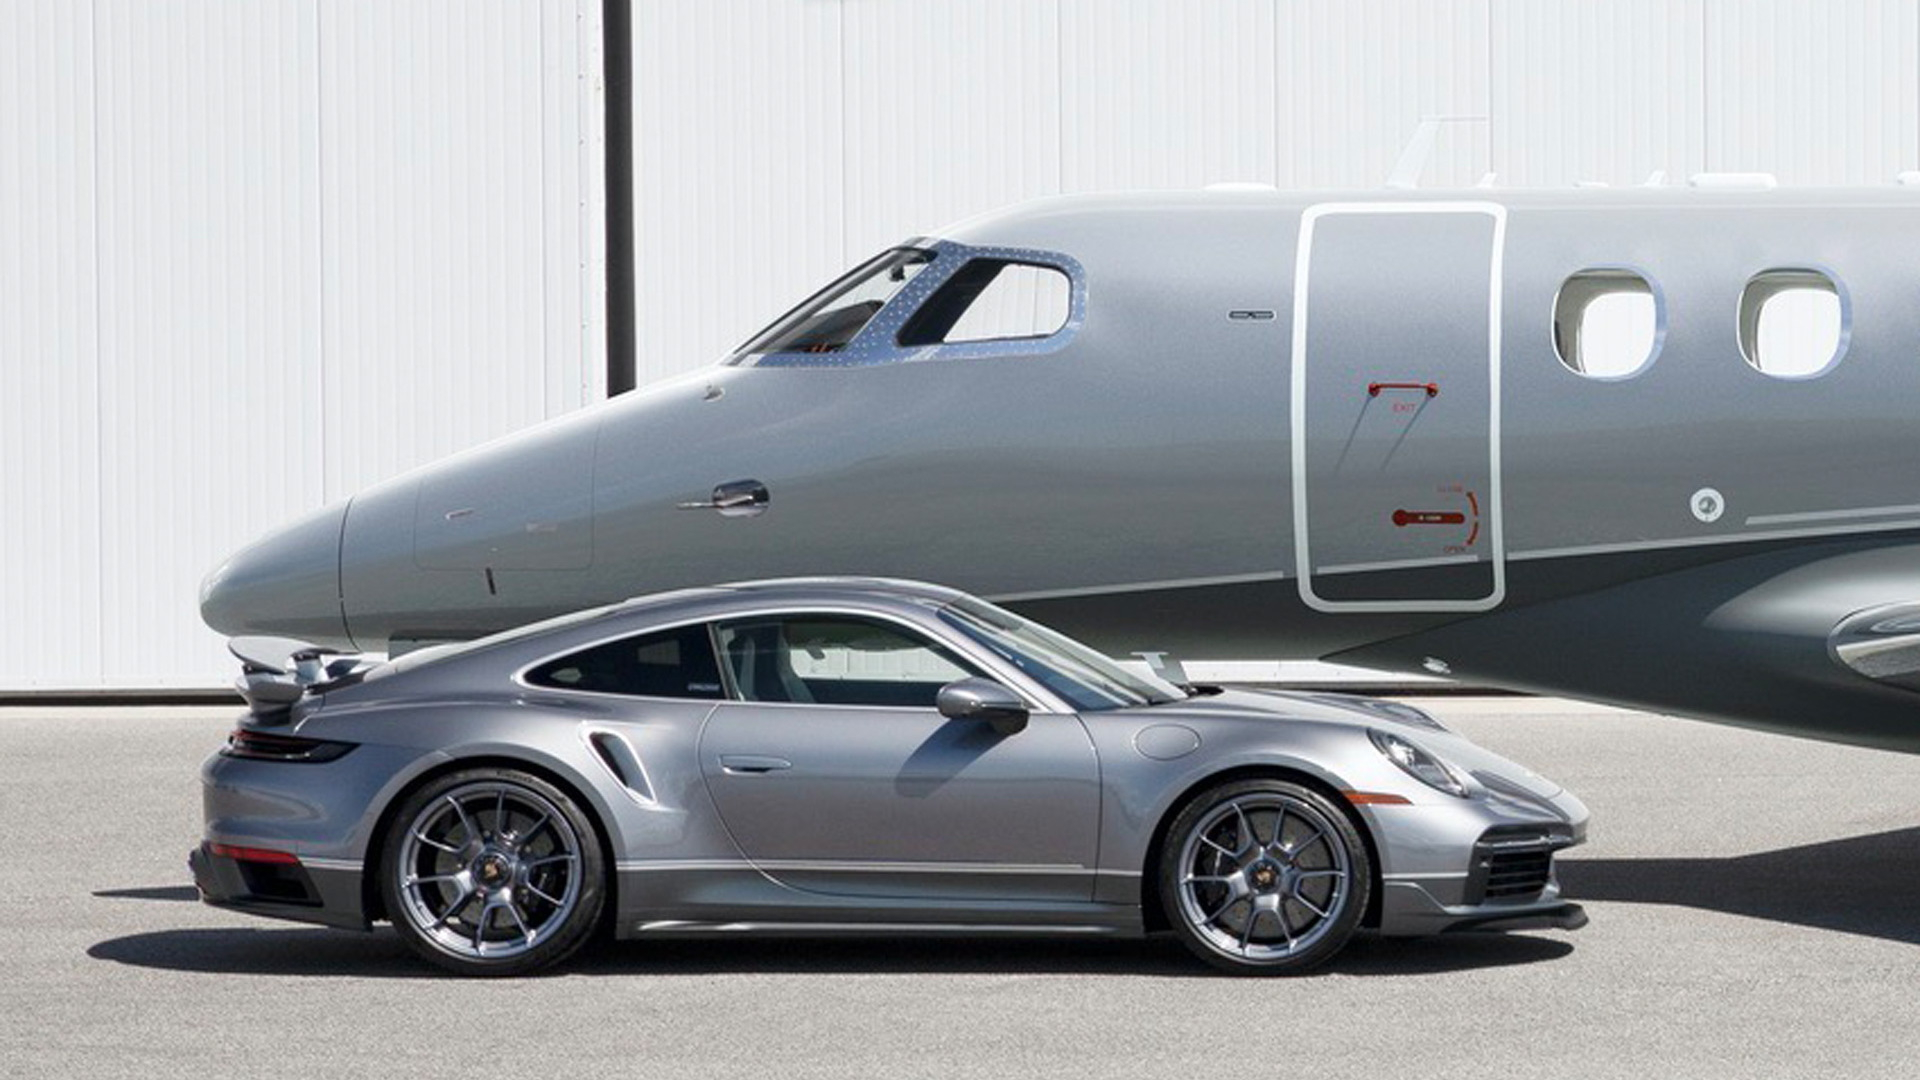 "2021 Porsche 911 Turbo S ""Duet"" and Embraer Phenom 300E"